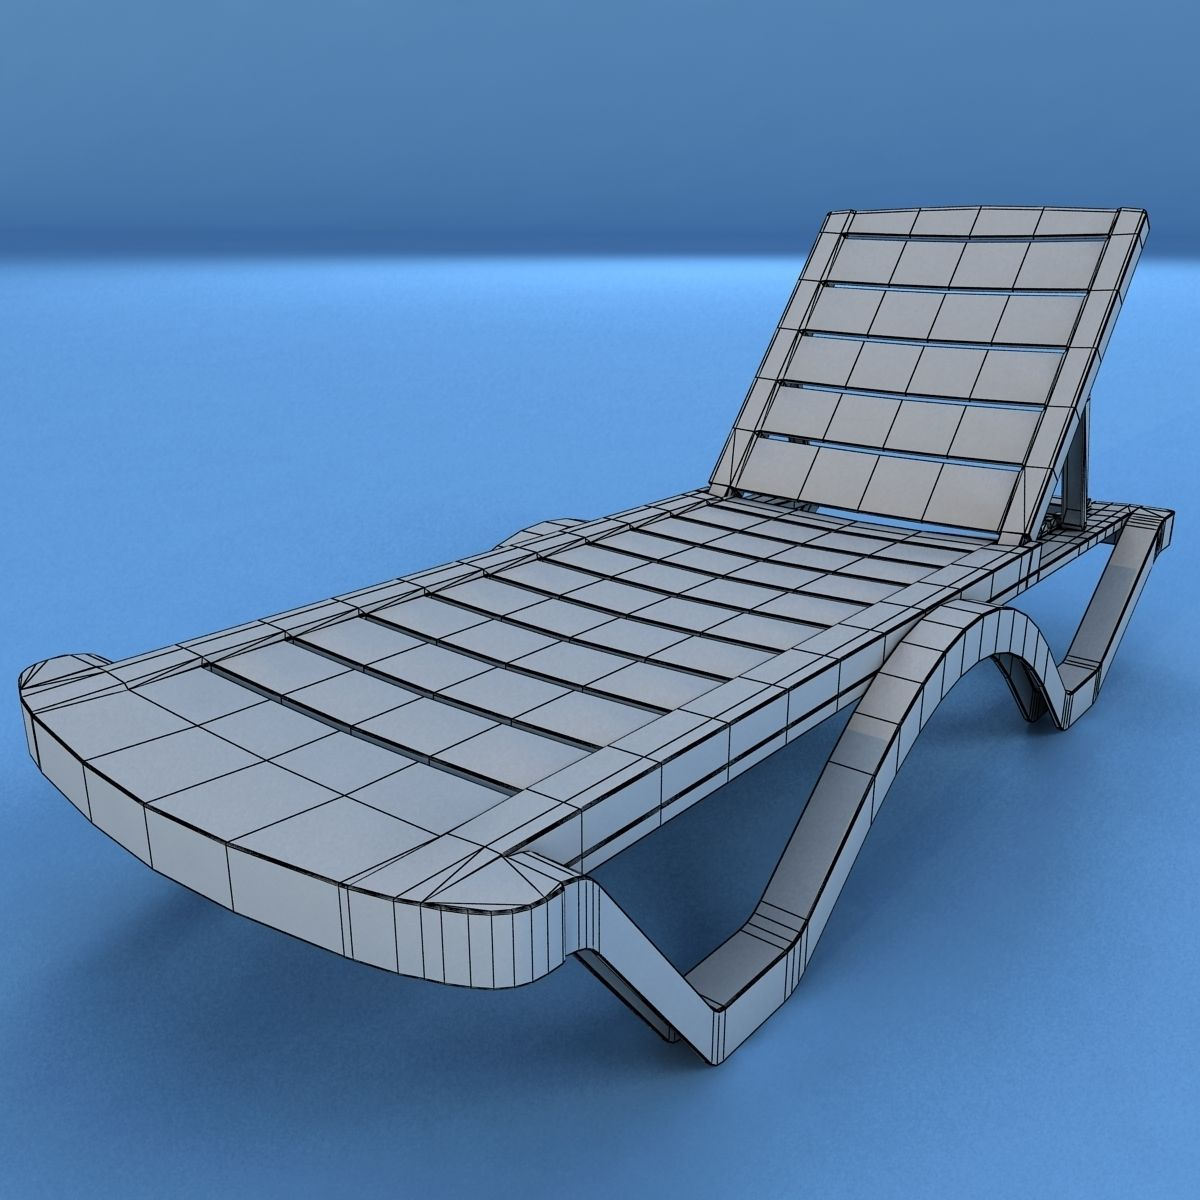 Lounge chair outdoor wood patio deck 3d model obj mtl cgtrader com -  Sunbed Plastic 3d Model Low Poly Max Obj 3ds Fbx Mtl 11